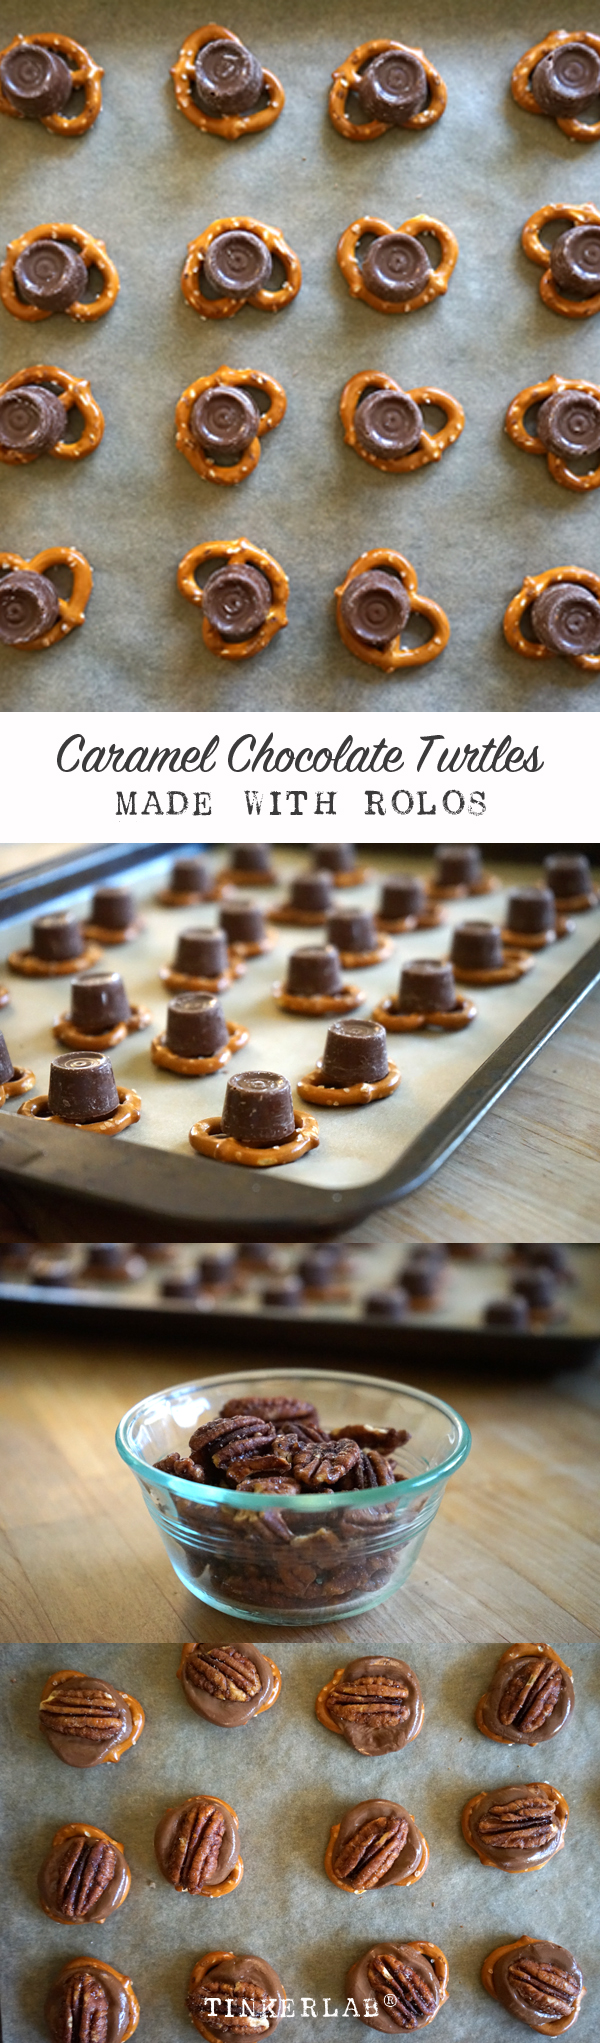 These are crazy good and so easy to make. Everyone loves them. Caramel Chocolate Rolo Turtle Recipe | TinkerLab